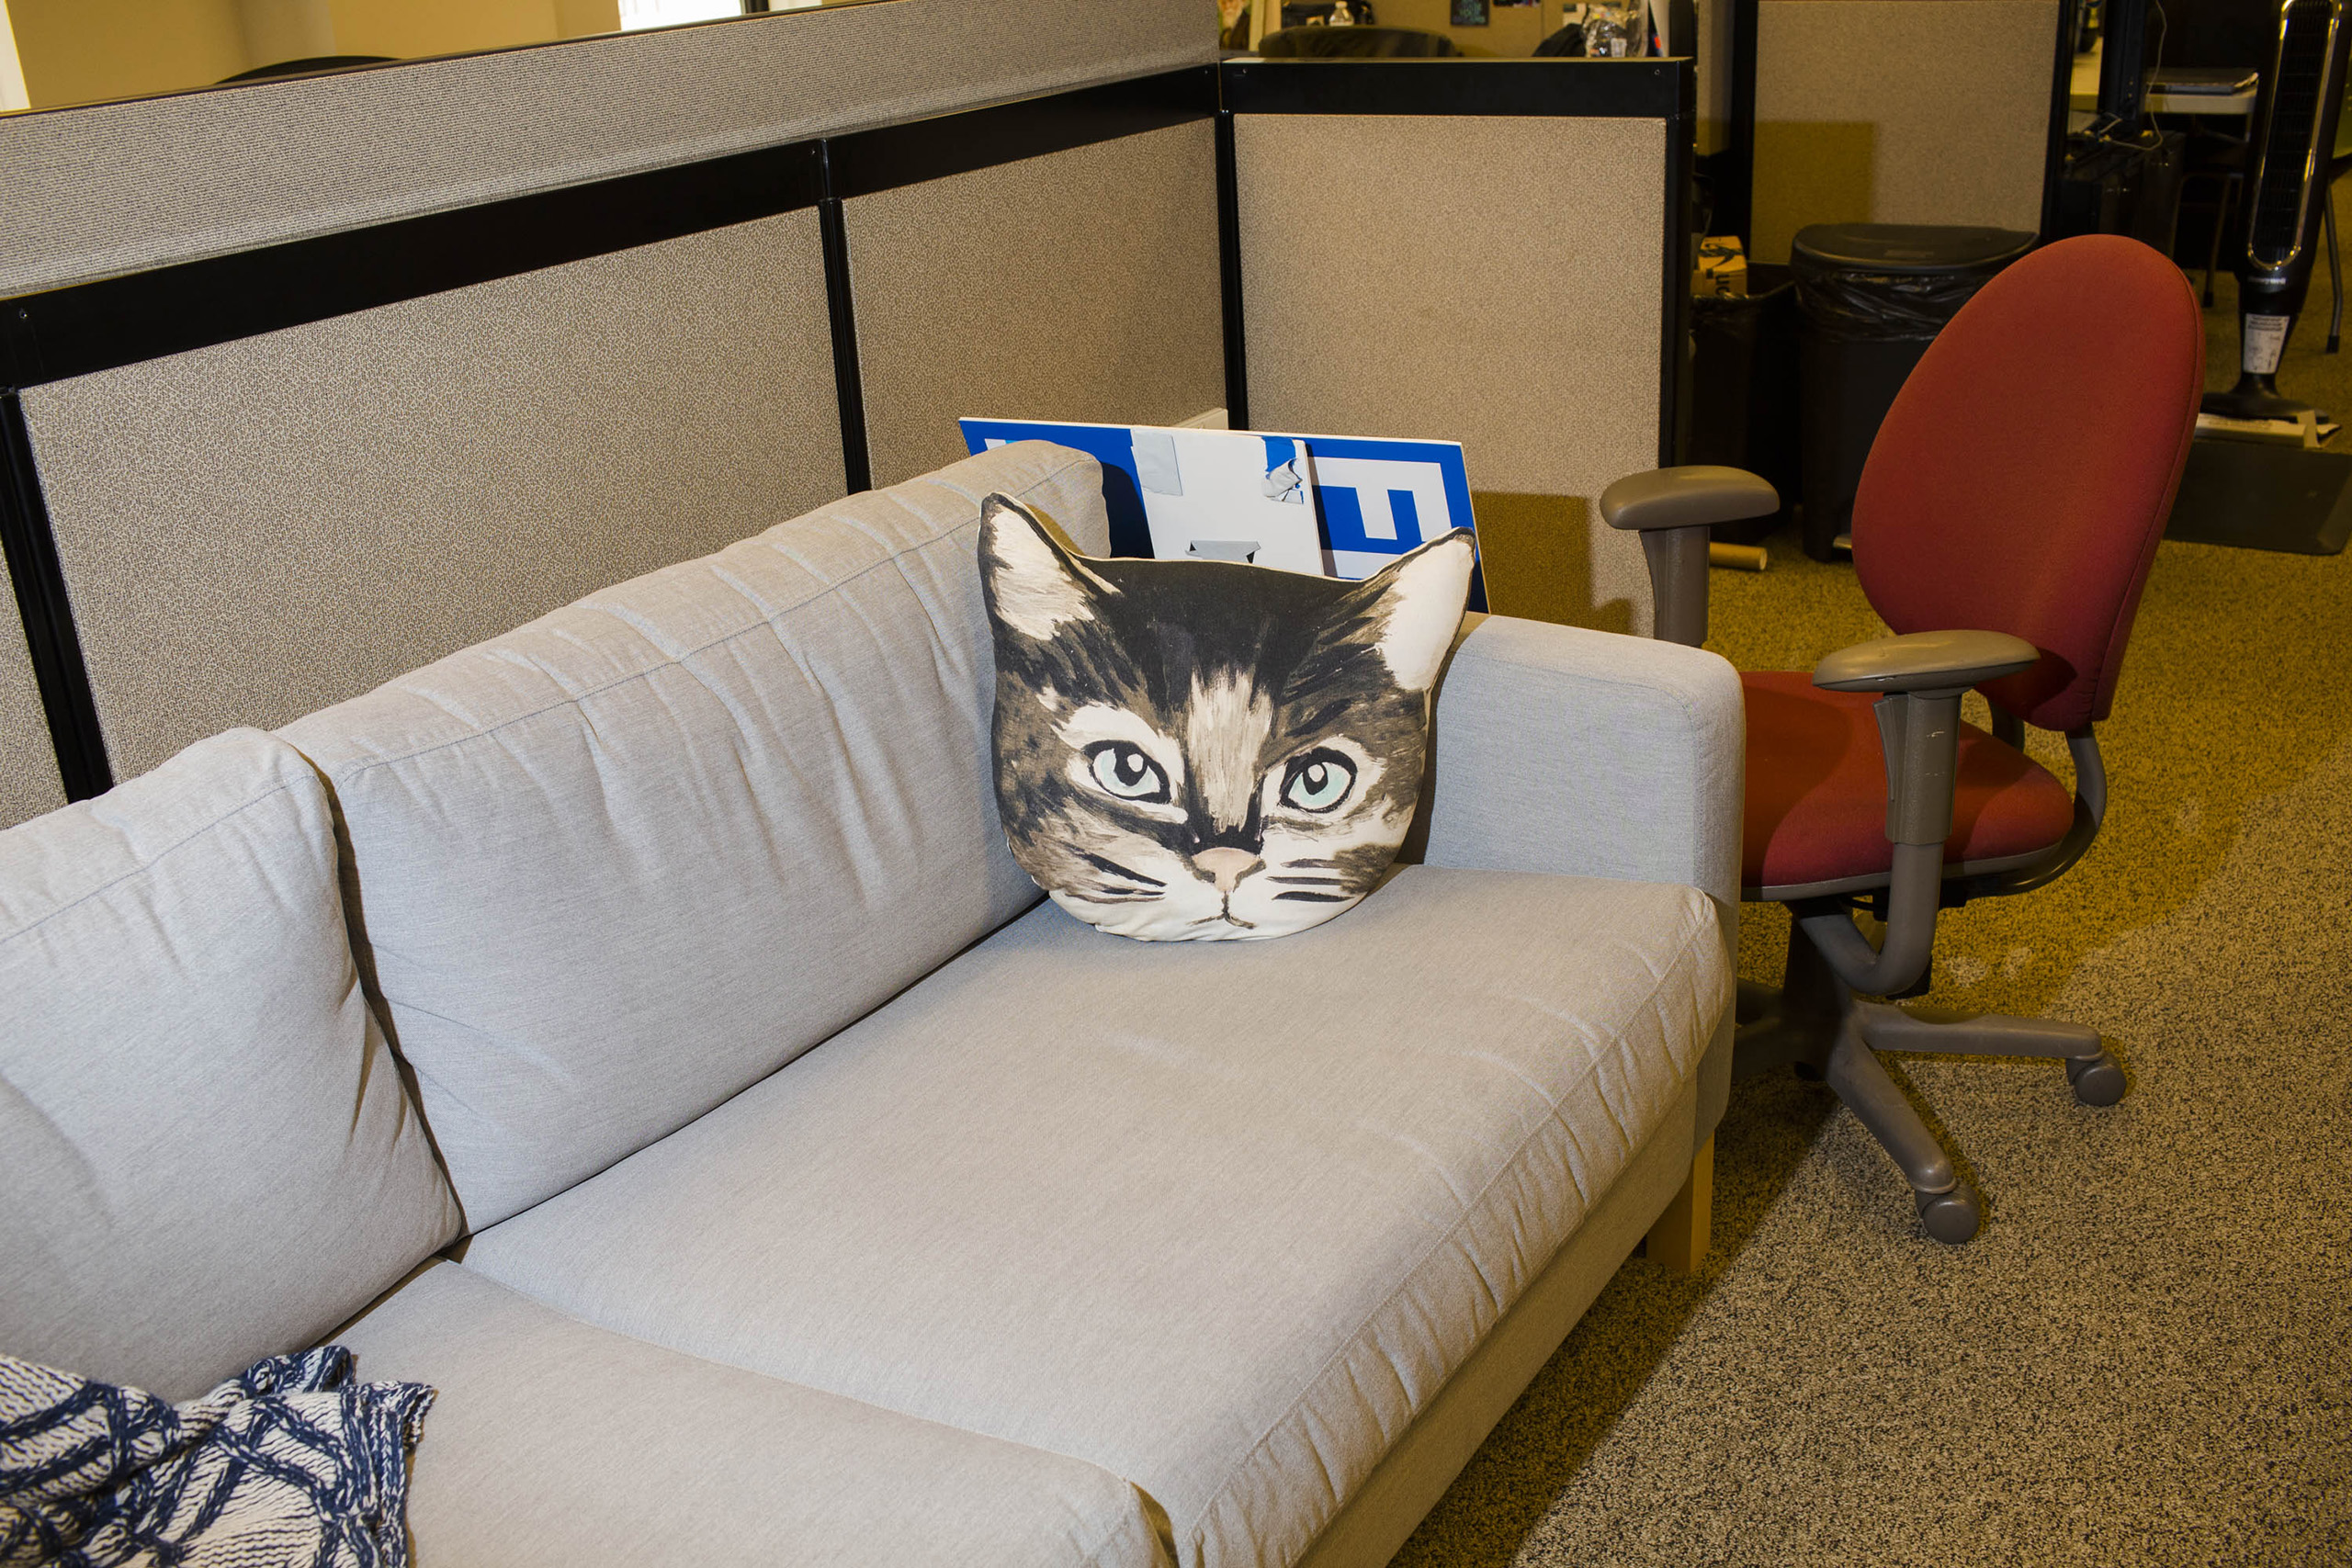 A cat pillow inside the campaign headquarters of Hillary Clinton on May 24, 2016, in Brooklyn, NY.